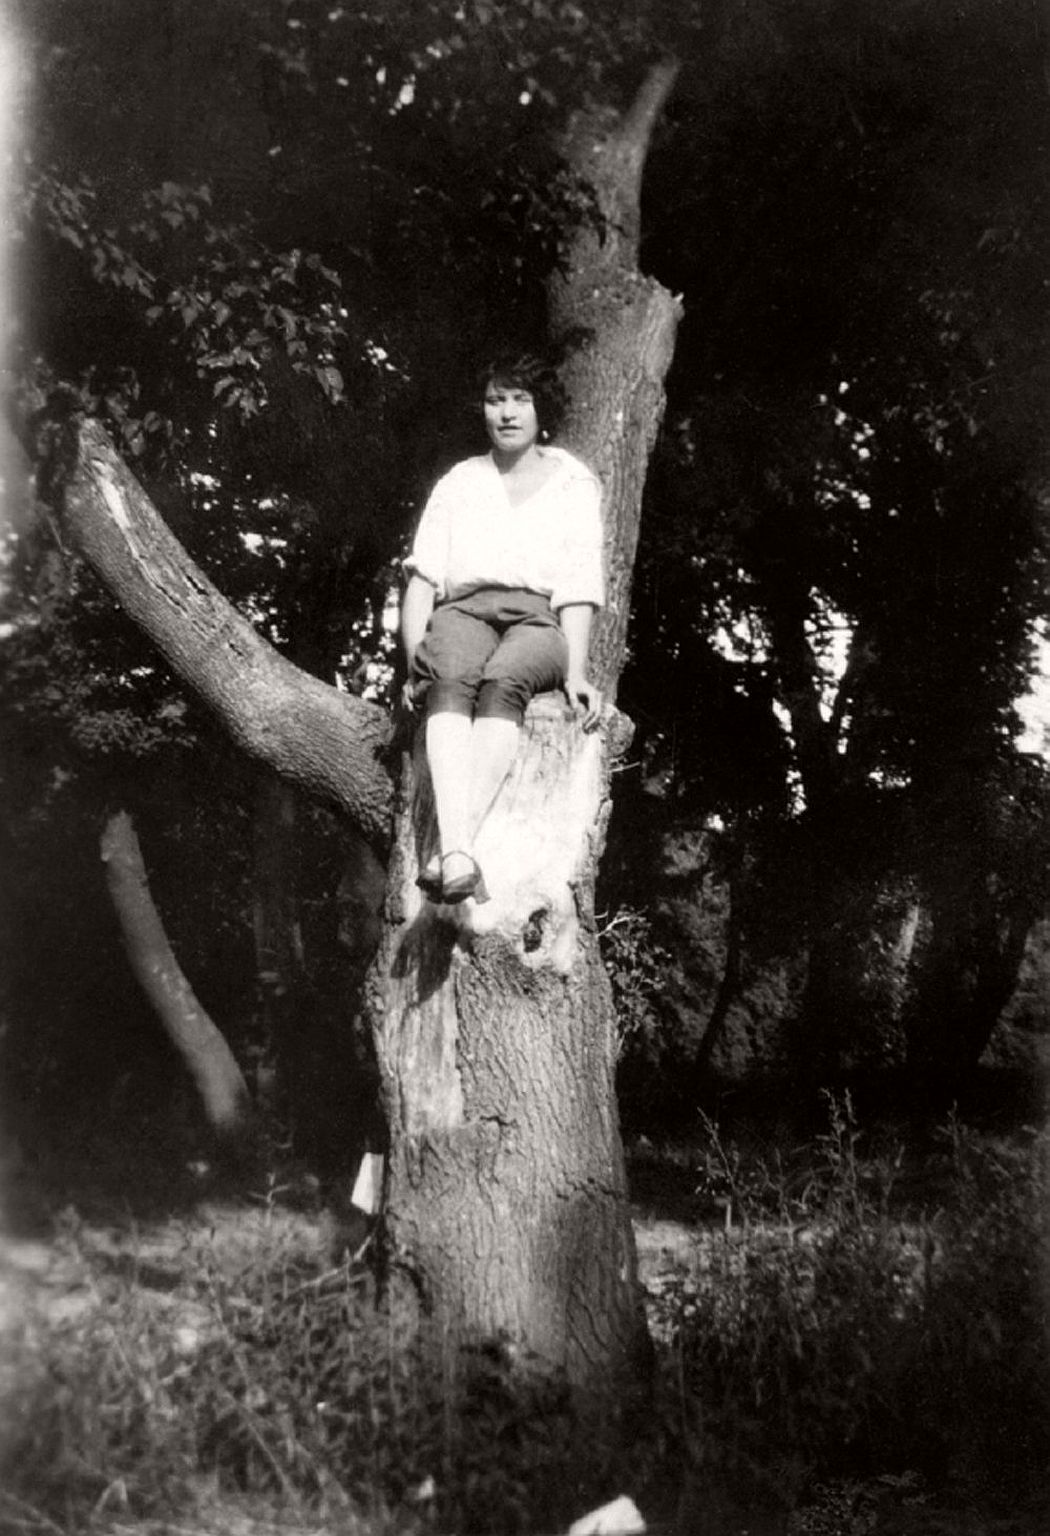 women-in-trees-hatje-cantz-07